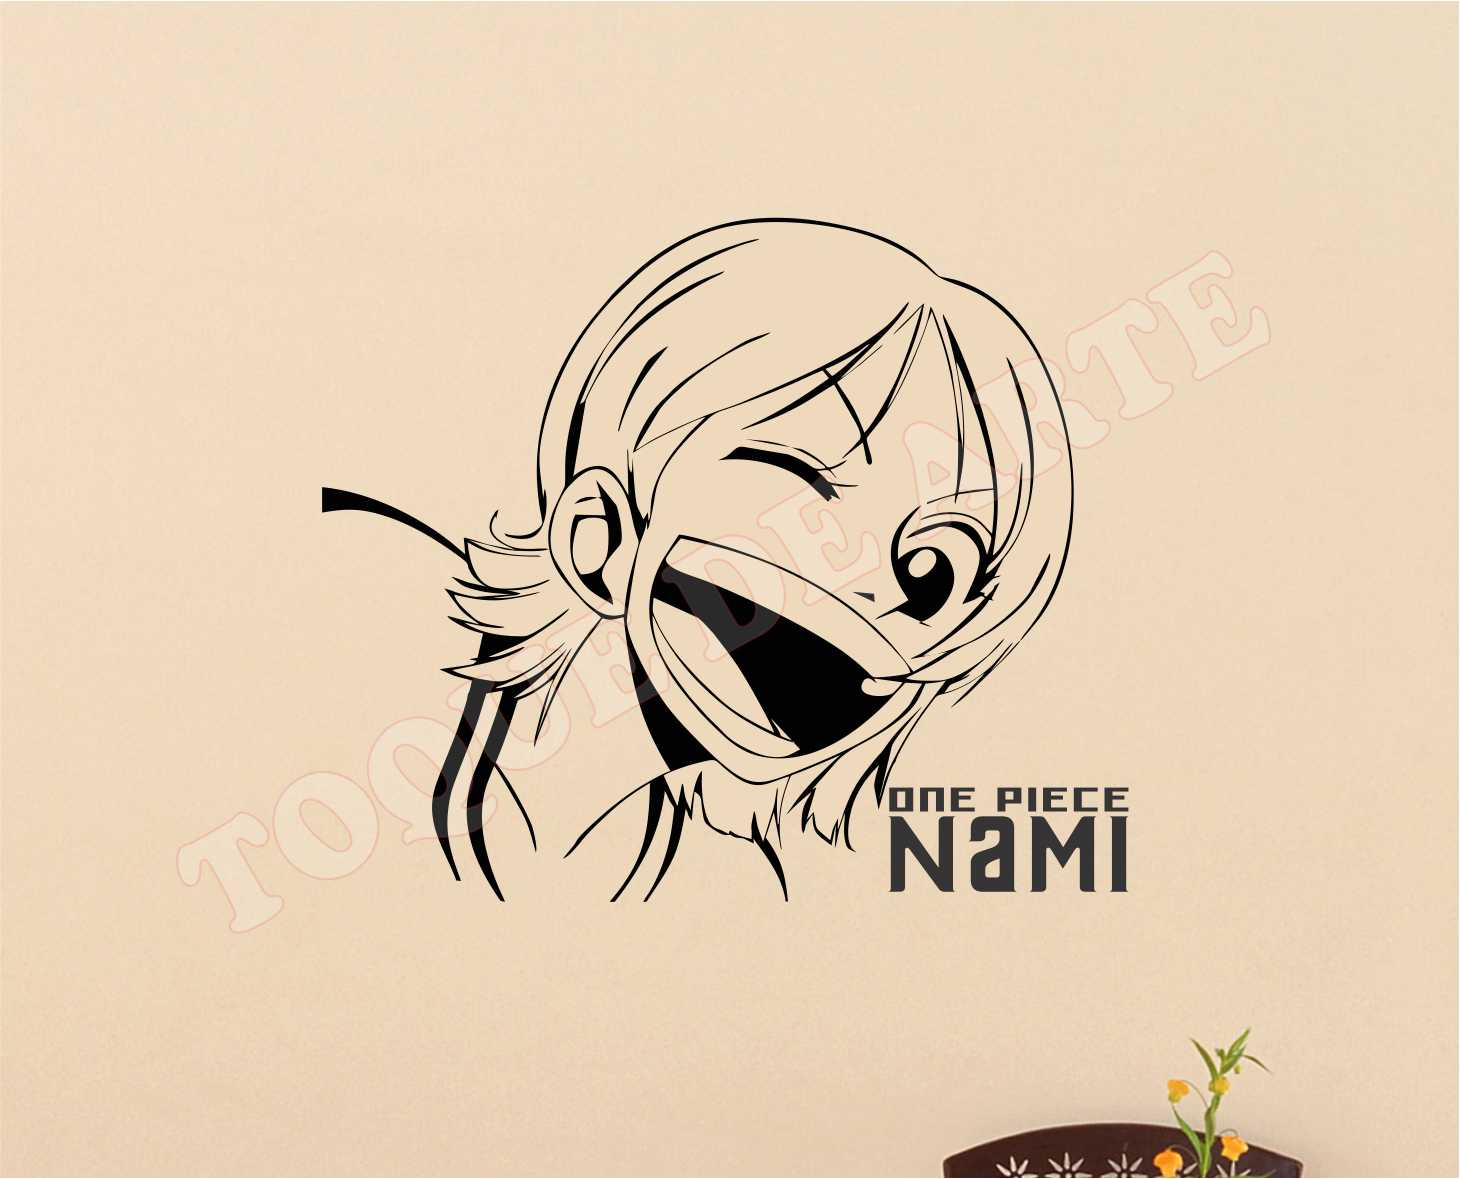 Piece Ad Toque De Arte Adesivos Decorativos Nami One Piece Ad